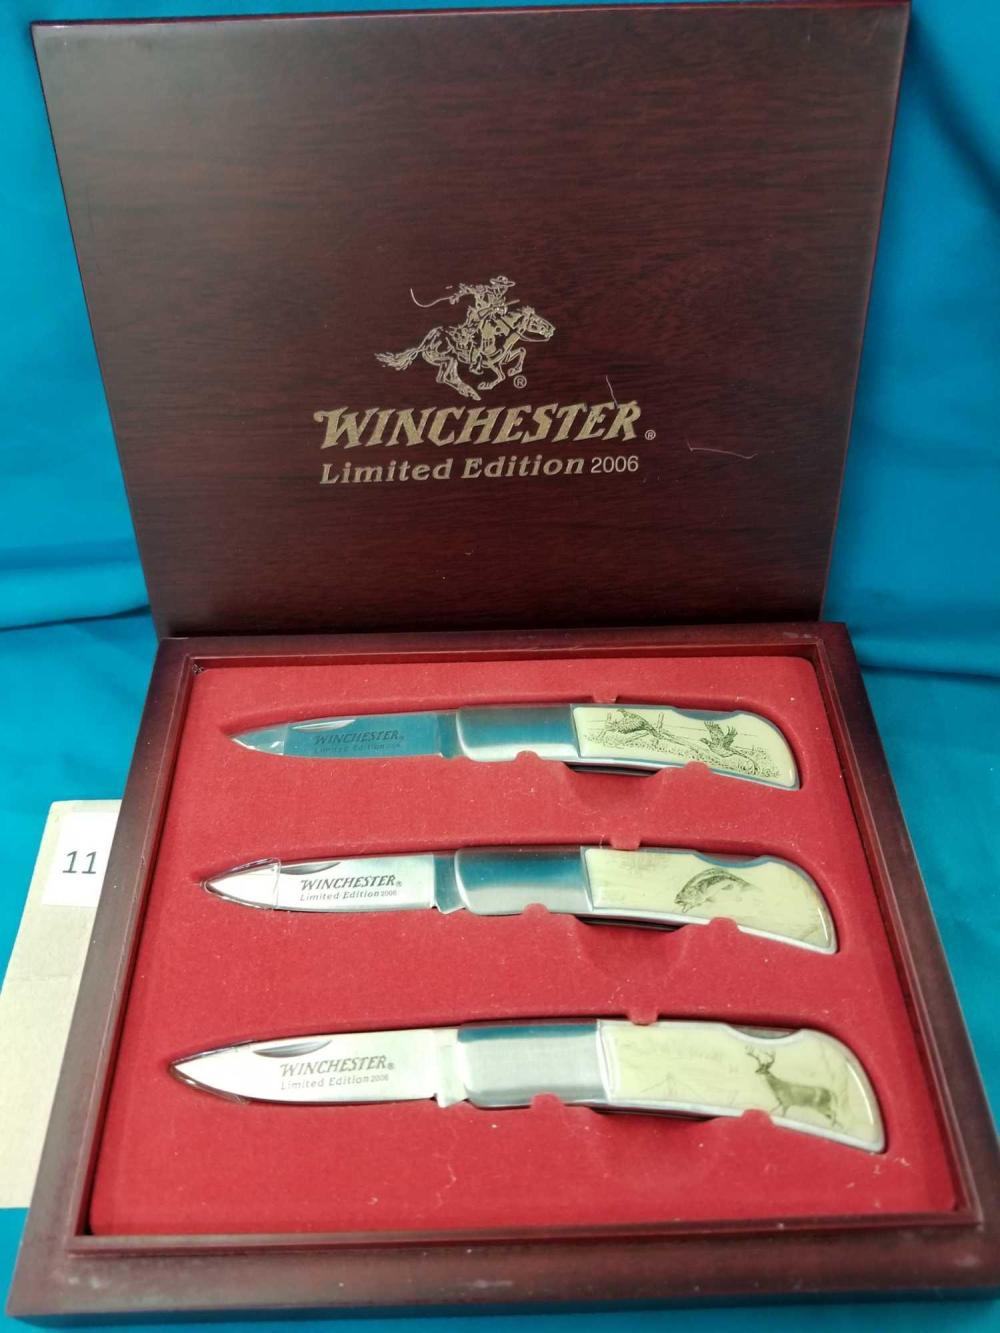 WINCHESTER 2006 3 FOLDING KNIFE LIMITED EDITION SET